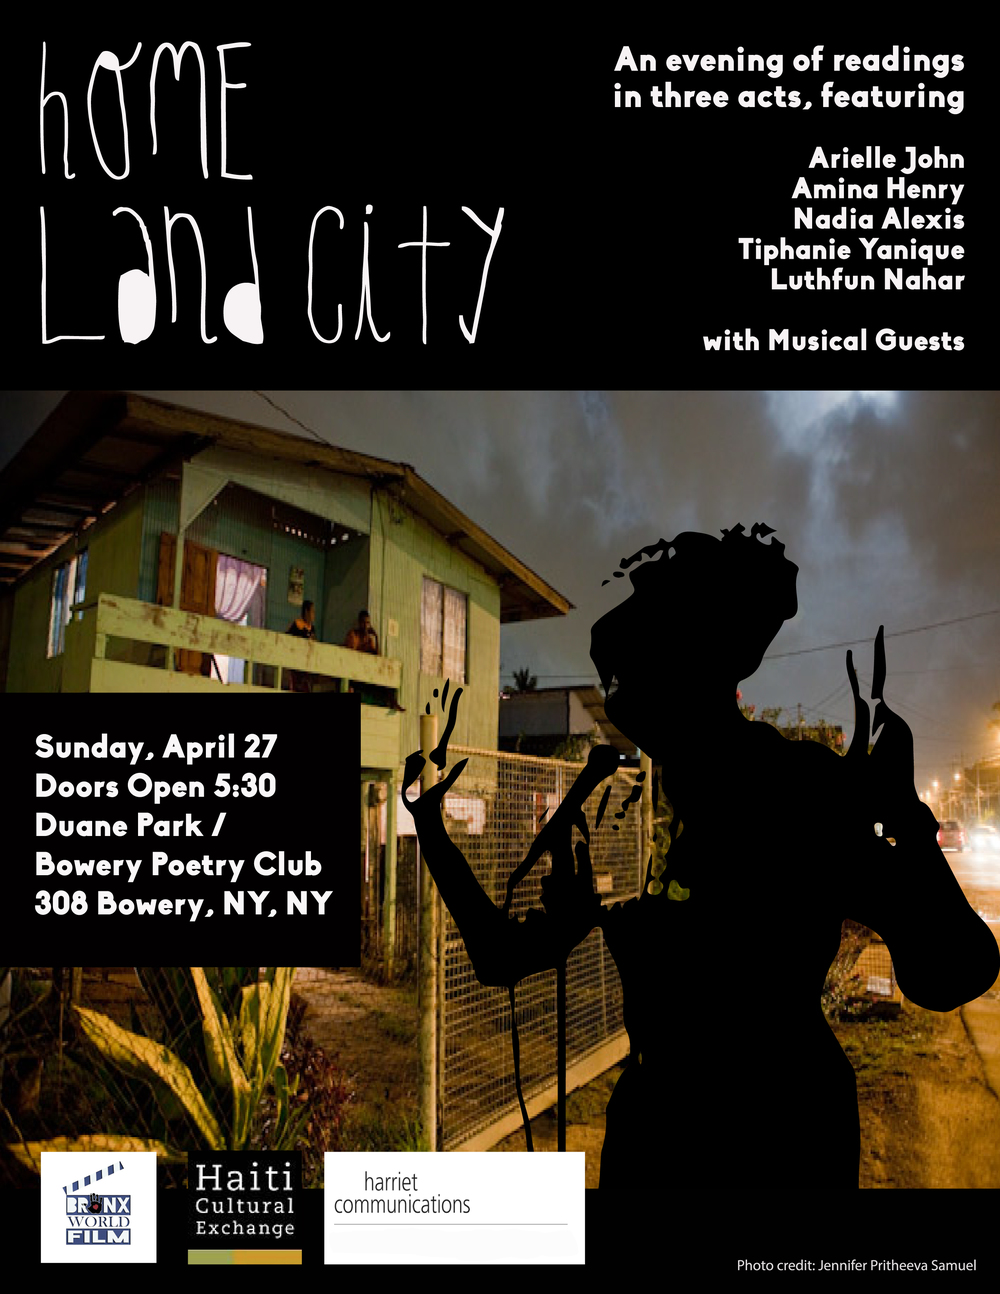 Home Land City Flyer.jpg